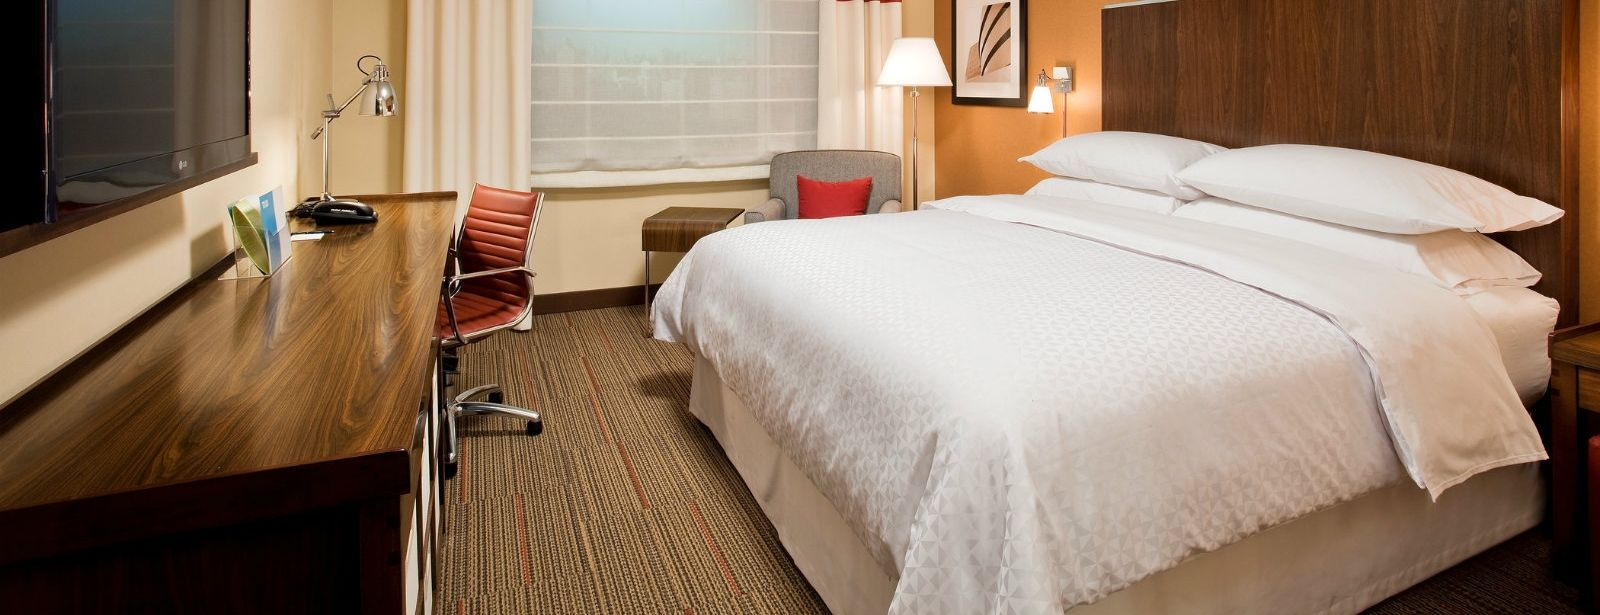 Newburgh Accommodations - Accessible King Room